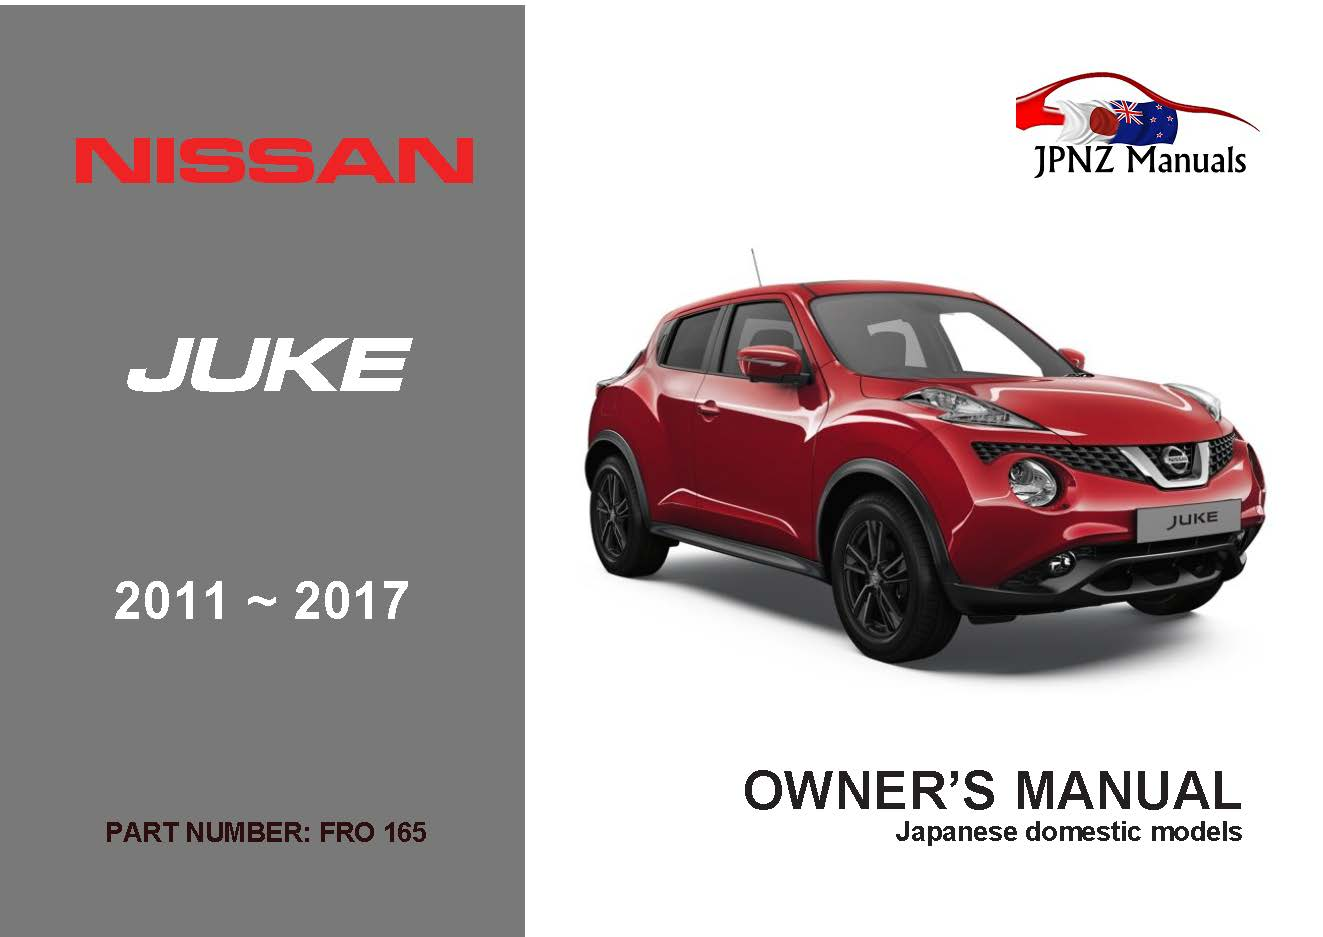 Nissan juke car owners manual 2011 2017 f15 jpnz for 2011 mercedes benz ml350 owners manual